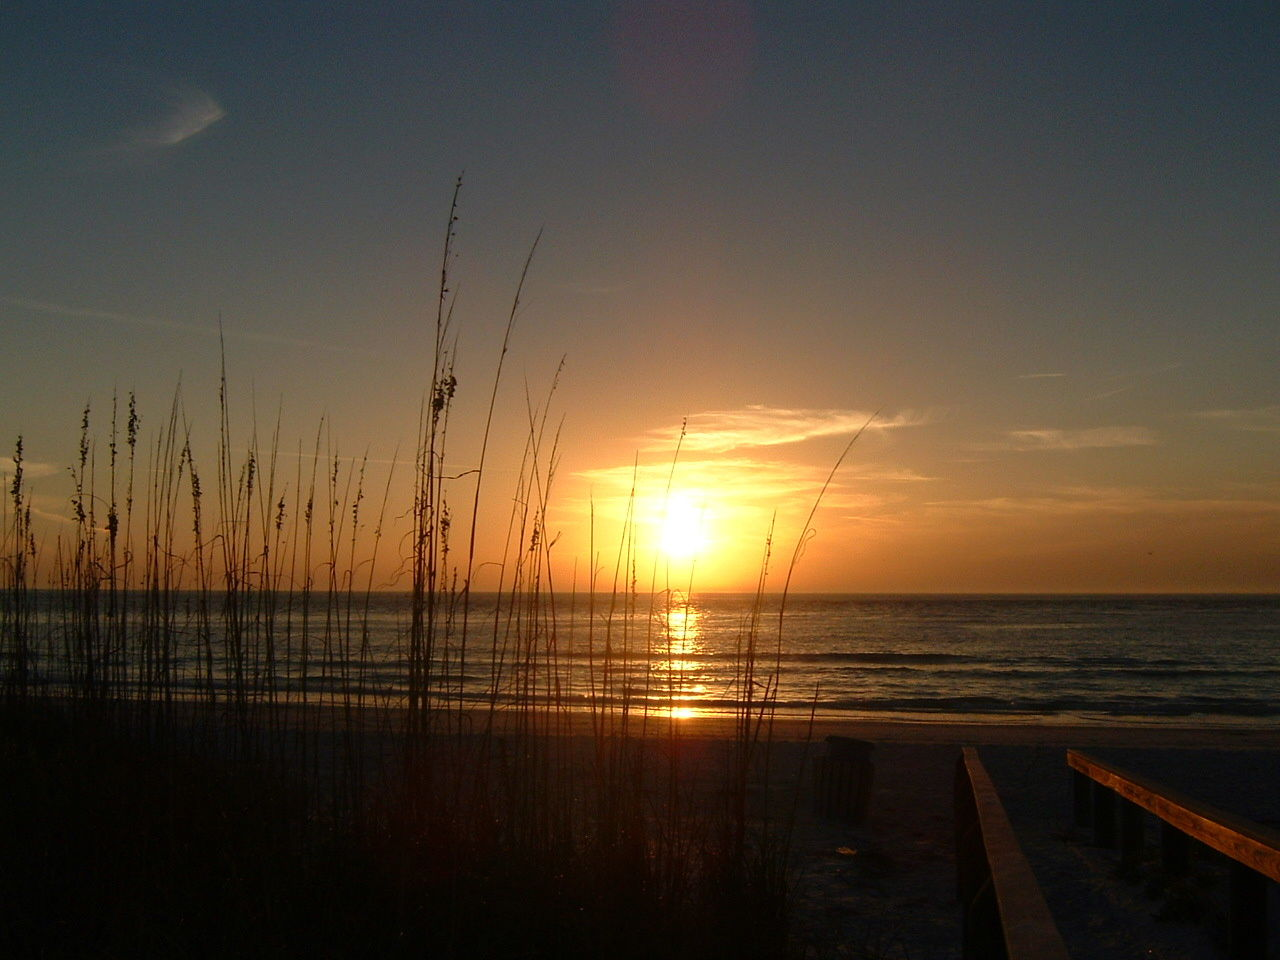 Sunset at Pass-a-Grille on St. Pete Beach.